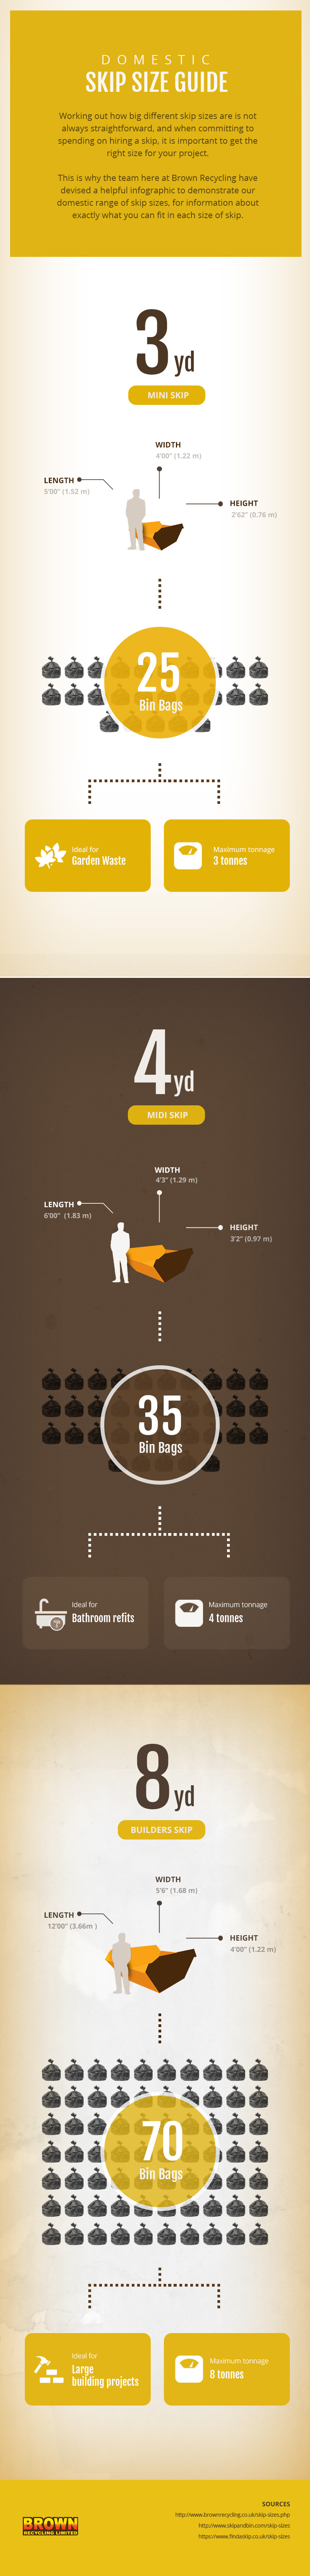 Domestic Skip Size Infographic